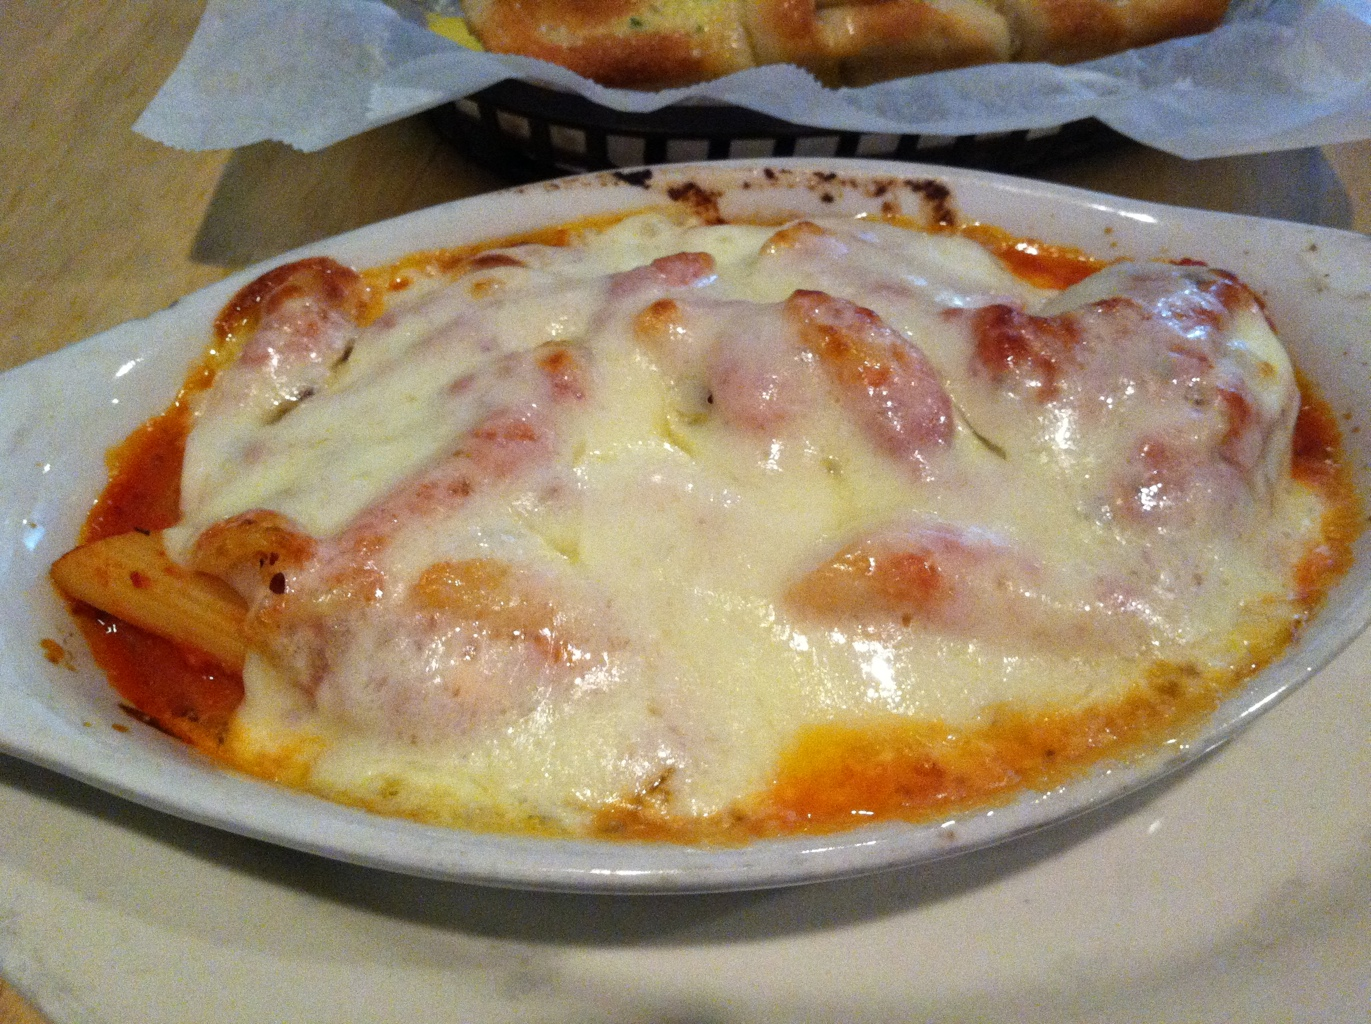 Baked Ziti at Village Pizza and Pasta